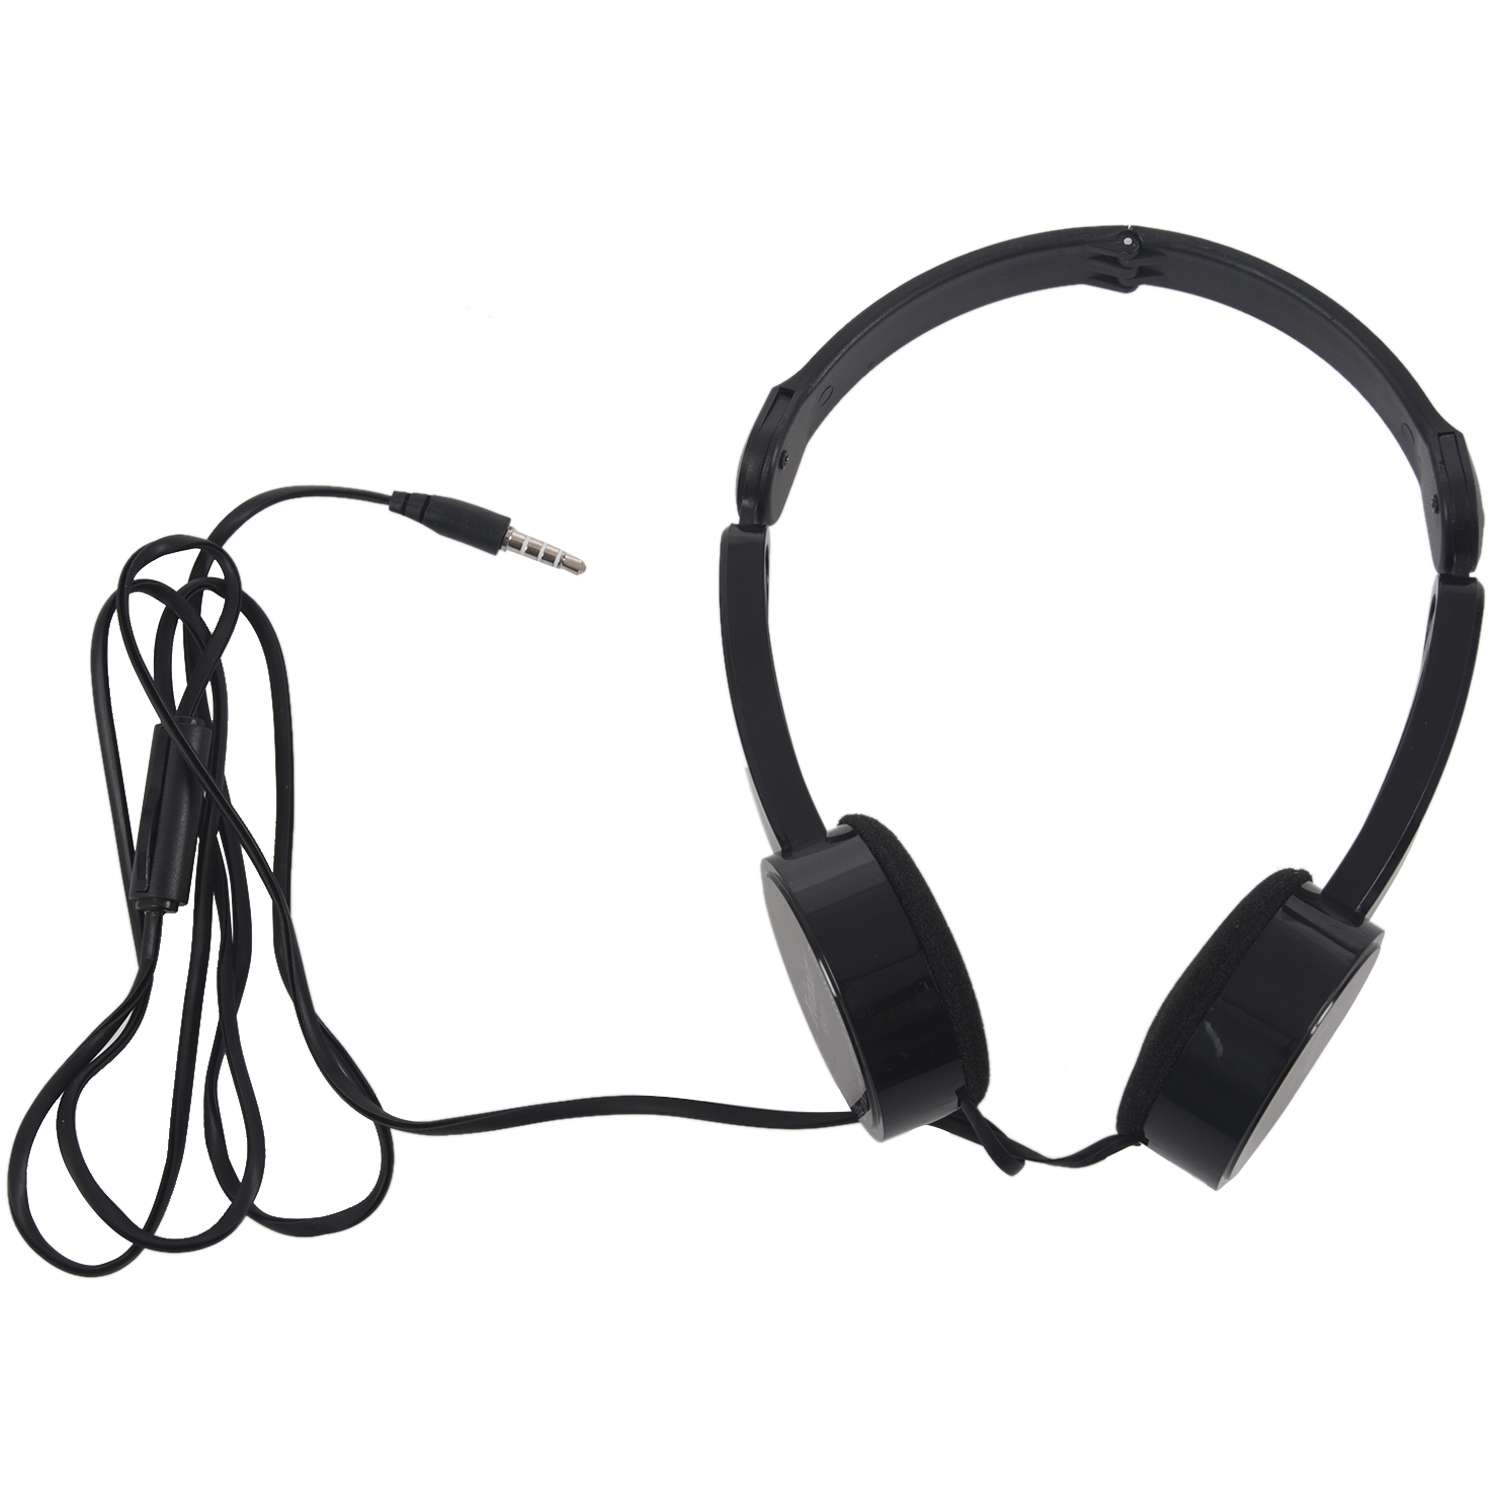 Hot Feinier 3 5mm Headset Phone Headset High Quality Headphones Personalized Children Gifts Headphones Black Bluetooth Earphones Headphones Aliexpress